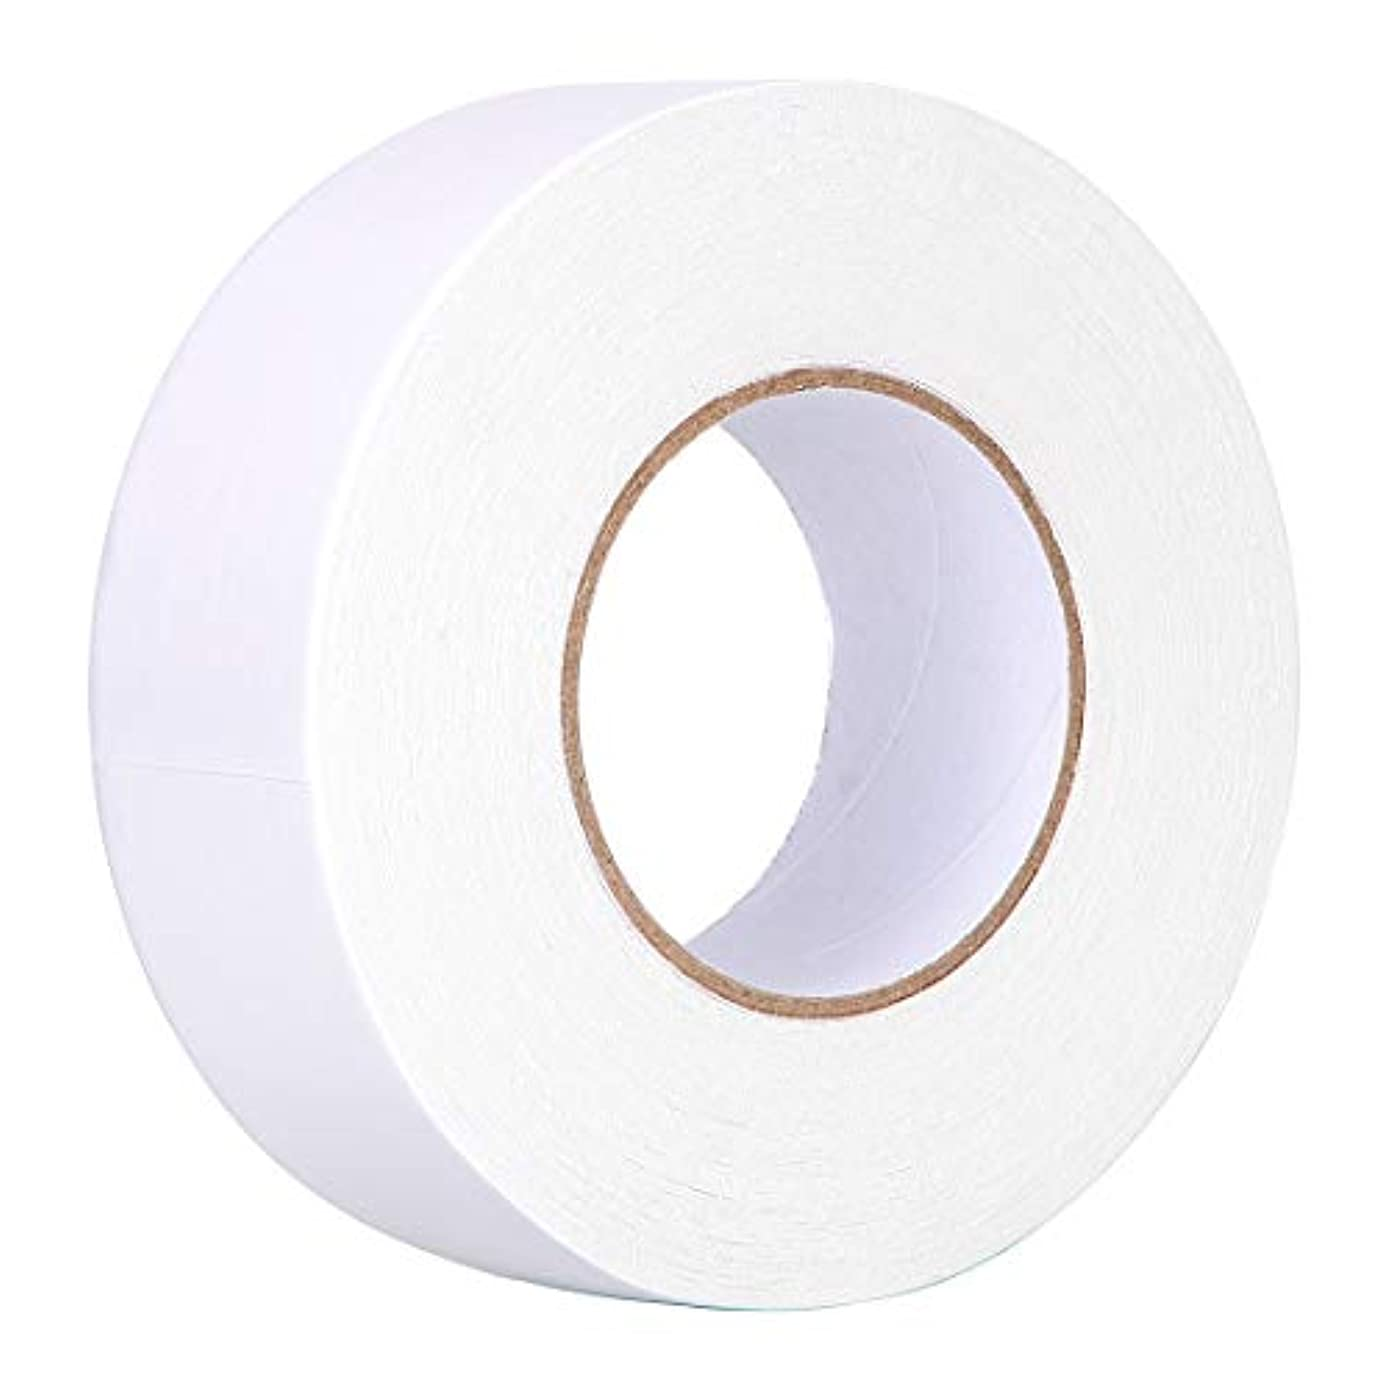 Extra Strength Double Sided Carpet Tape,White,2-Inch x 40 Yards. Perfect Gripper to Holding Indoor Rugs,Mats,Pads in Place (1 Roll)